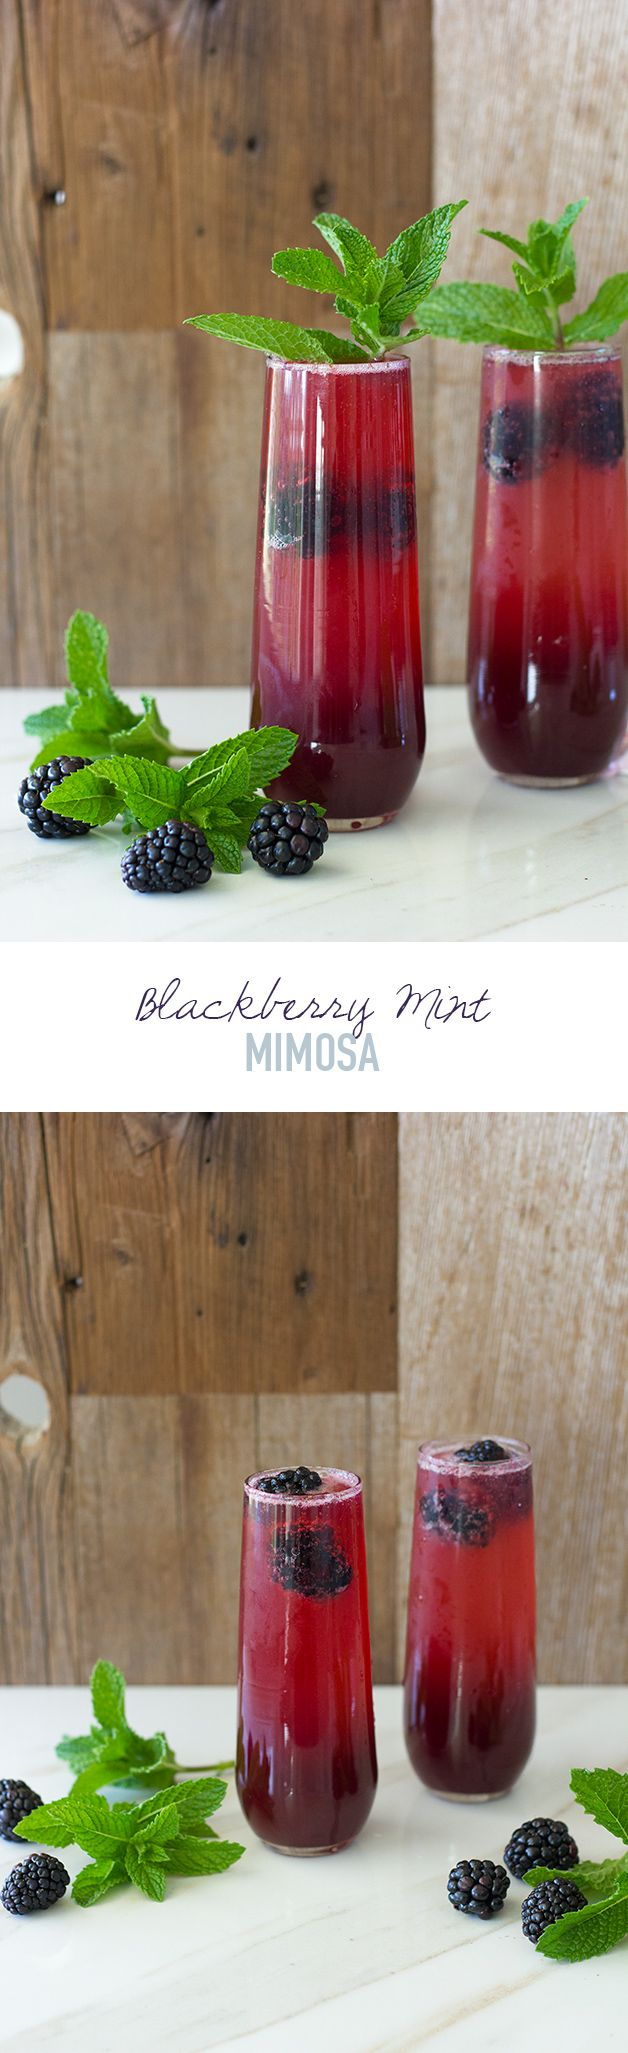 Blackberry Mint Mimosa - a summery spin on the classic mimosa that makes perfect use of the season's fresh produce. | www.brighteyedbaker.co...